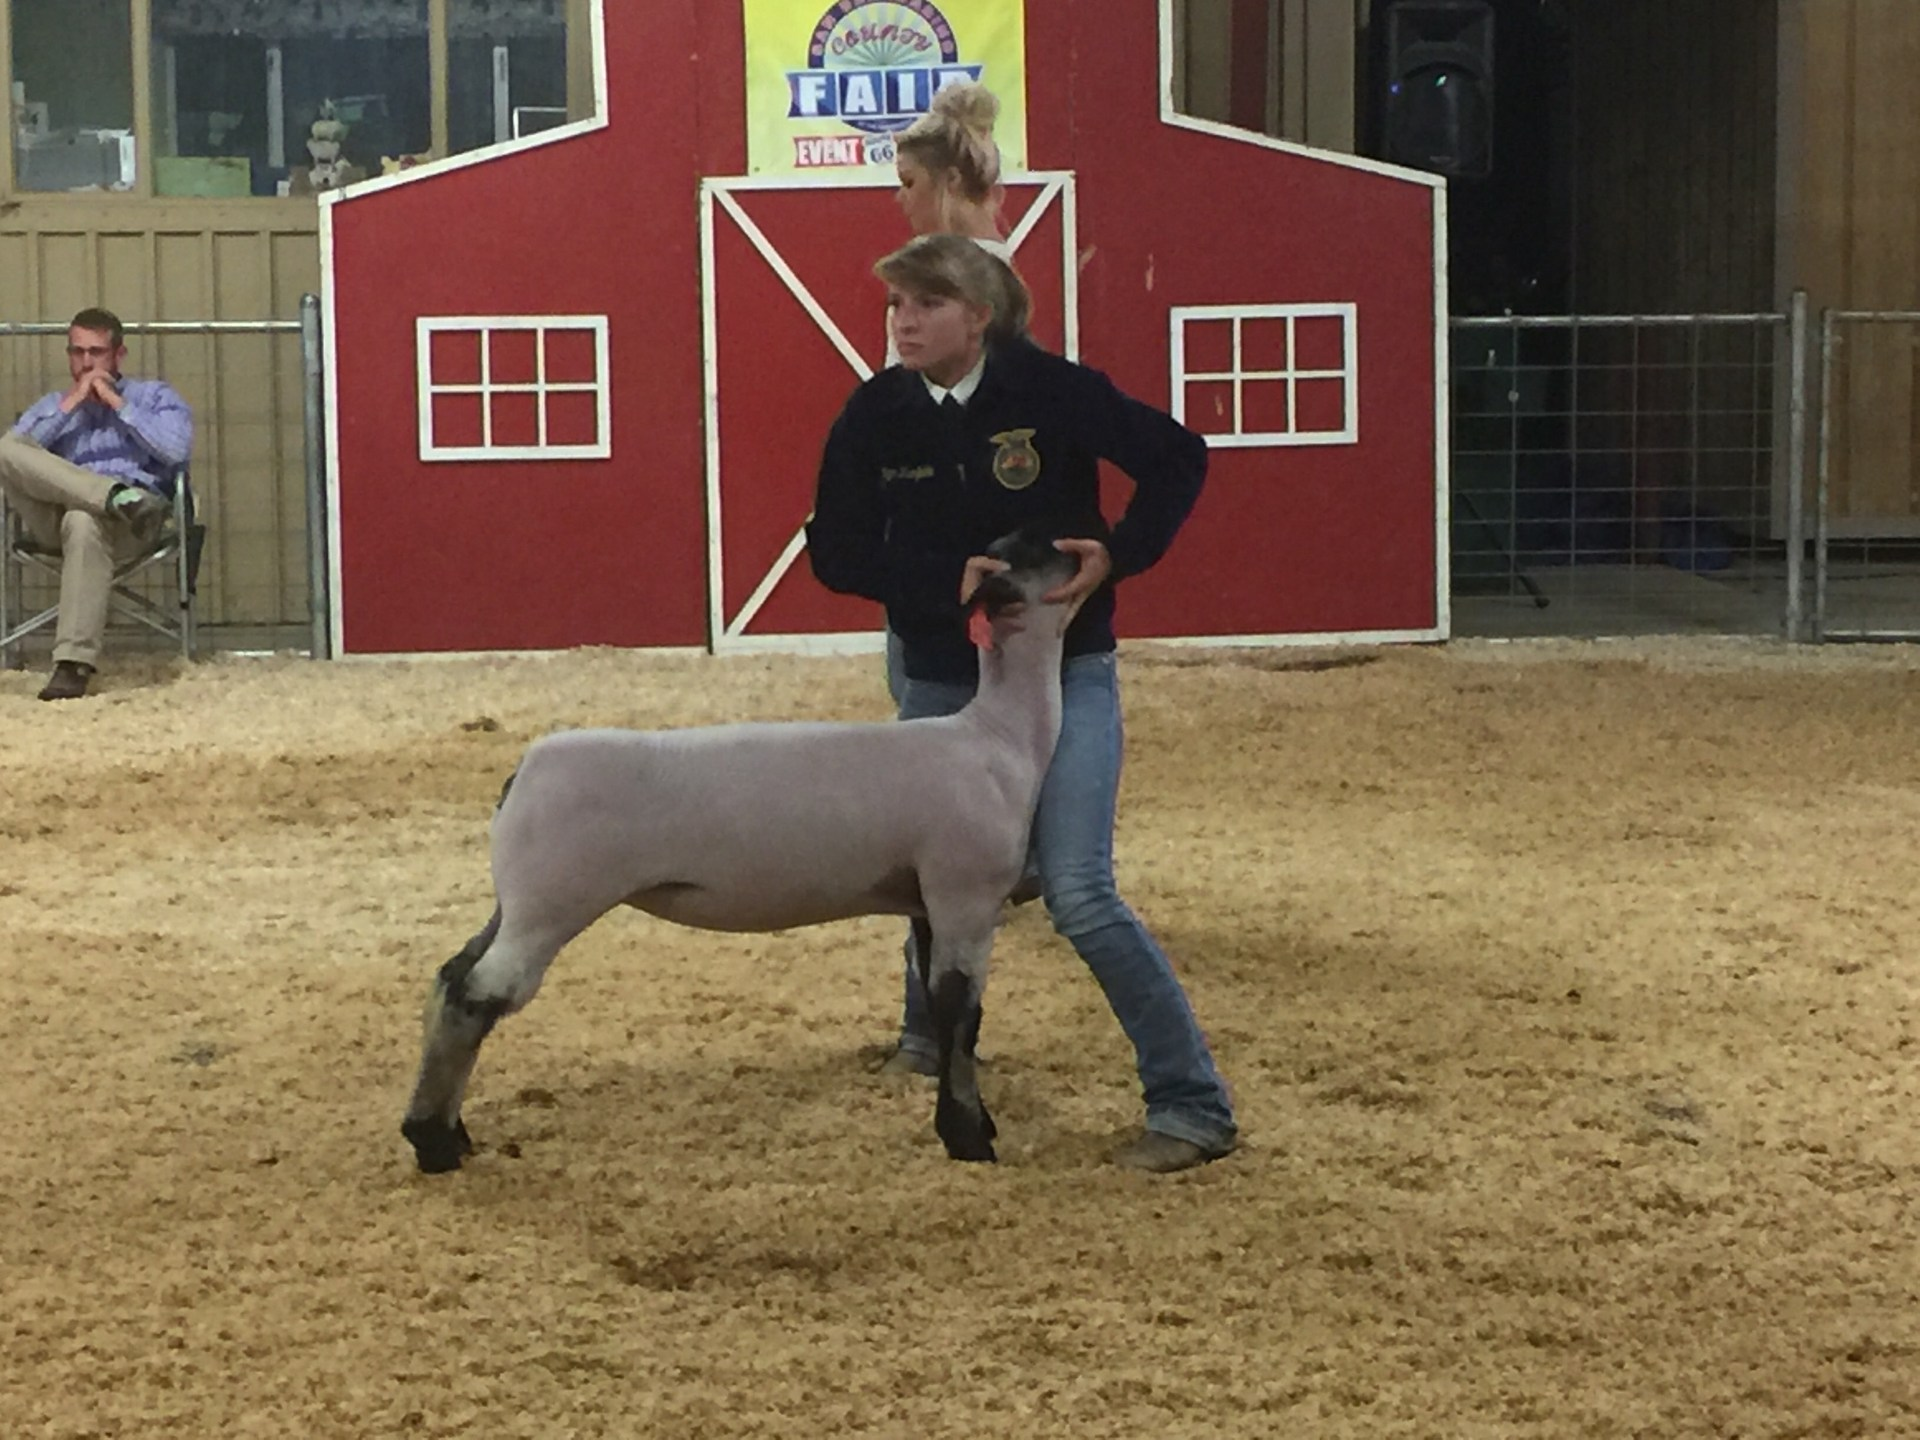 Student showing sheep